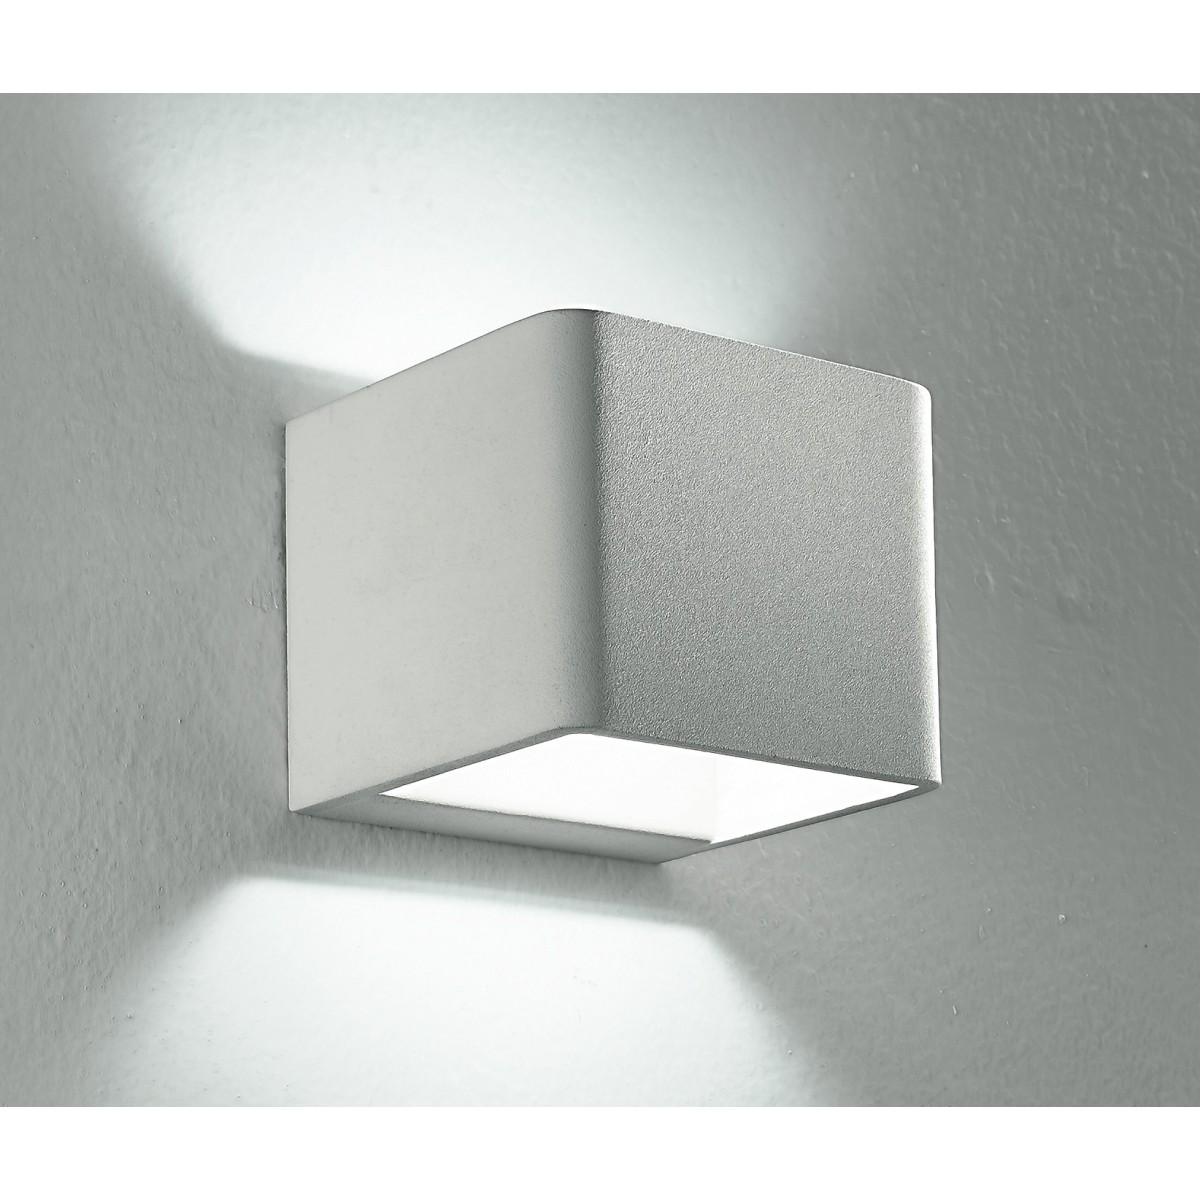 LED-W-ATLAS/6W - Applique bianca dalla